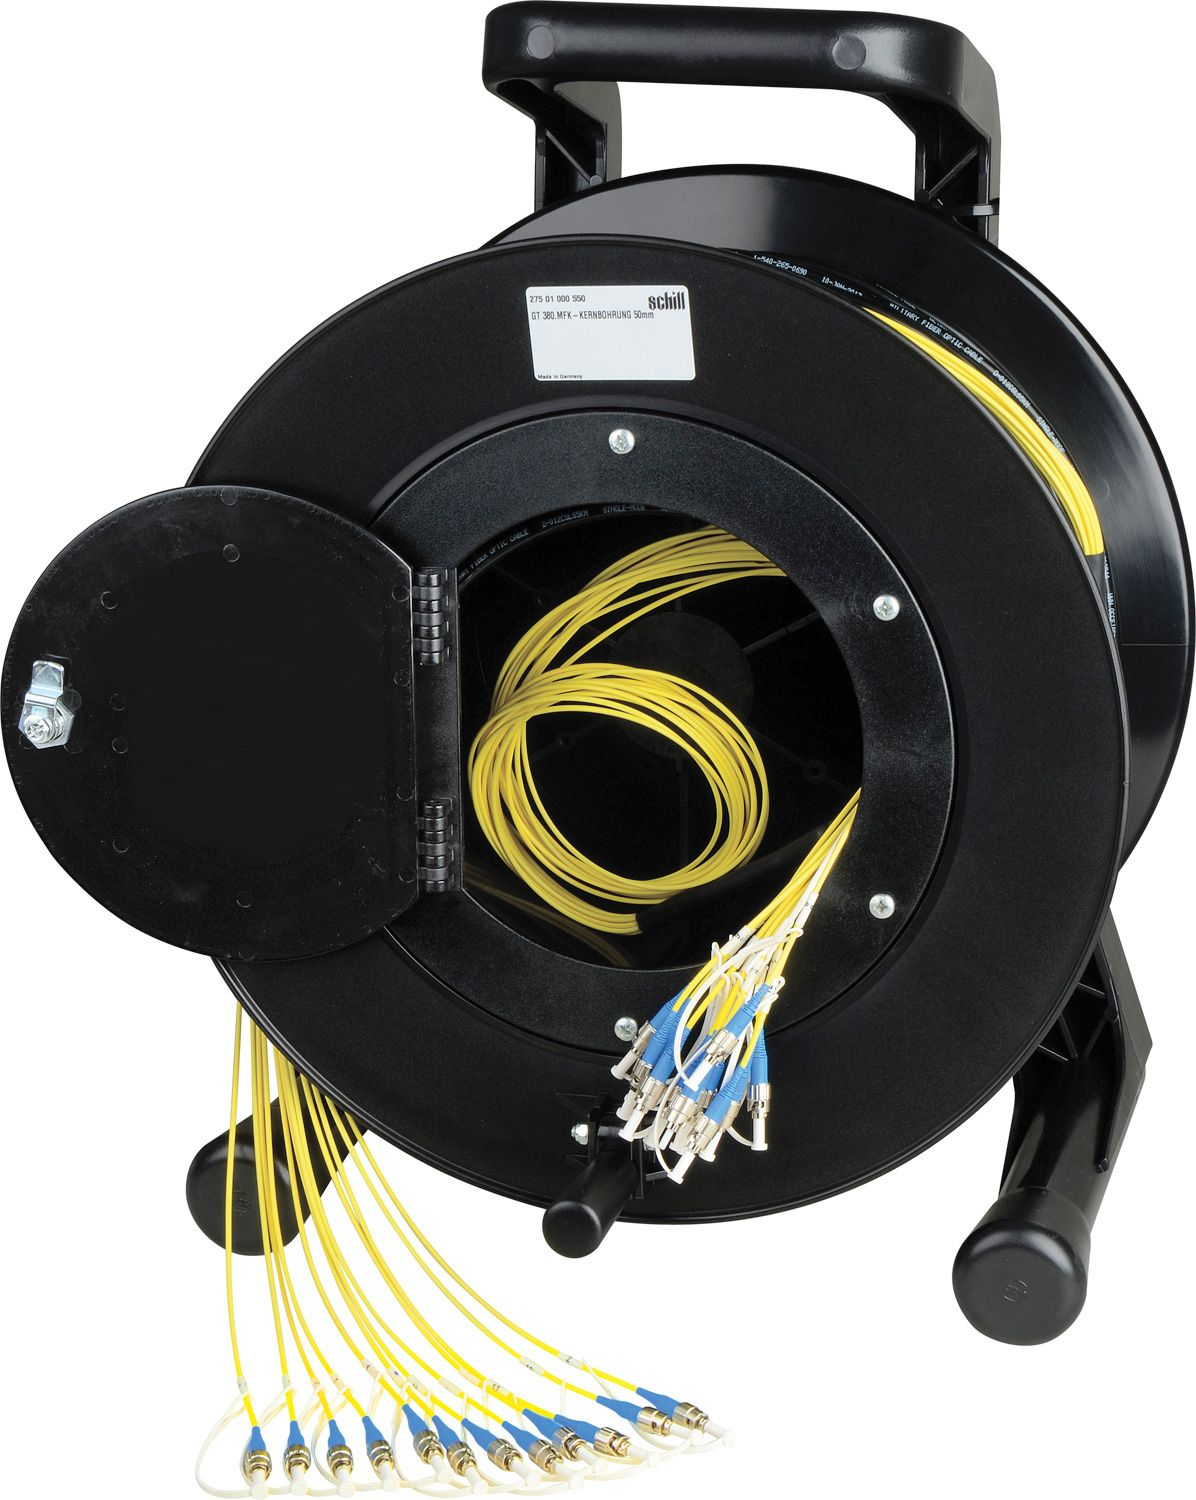 oil terminal skid mounted refueling device volinco e camplex 4 channel fiber optic tactical reels st or lc connectors extremely